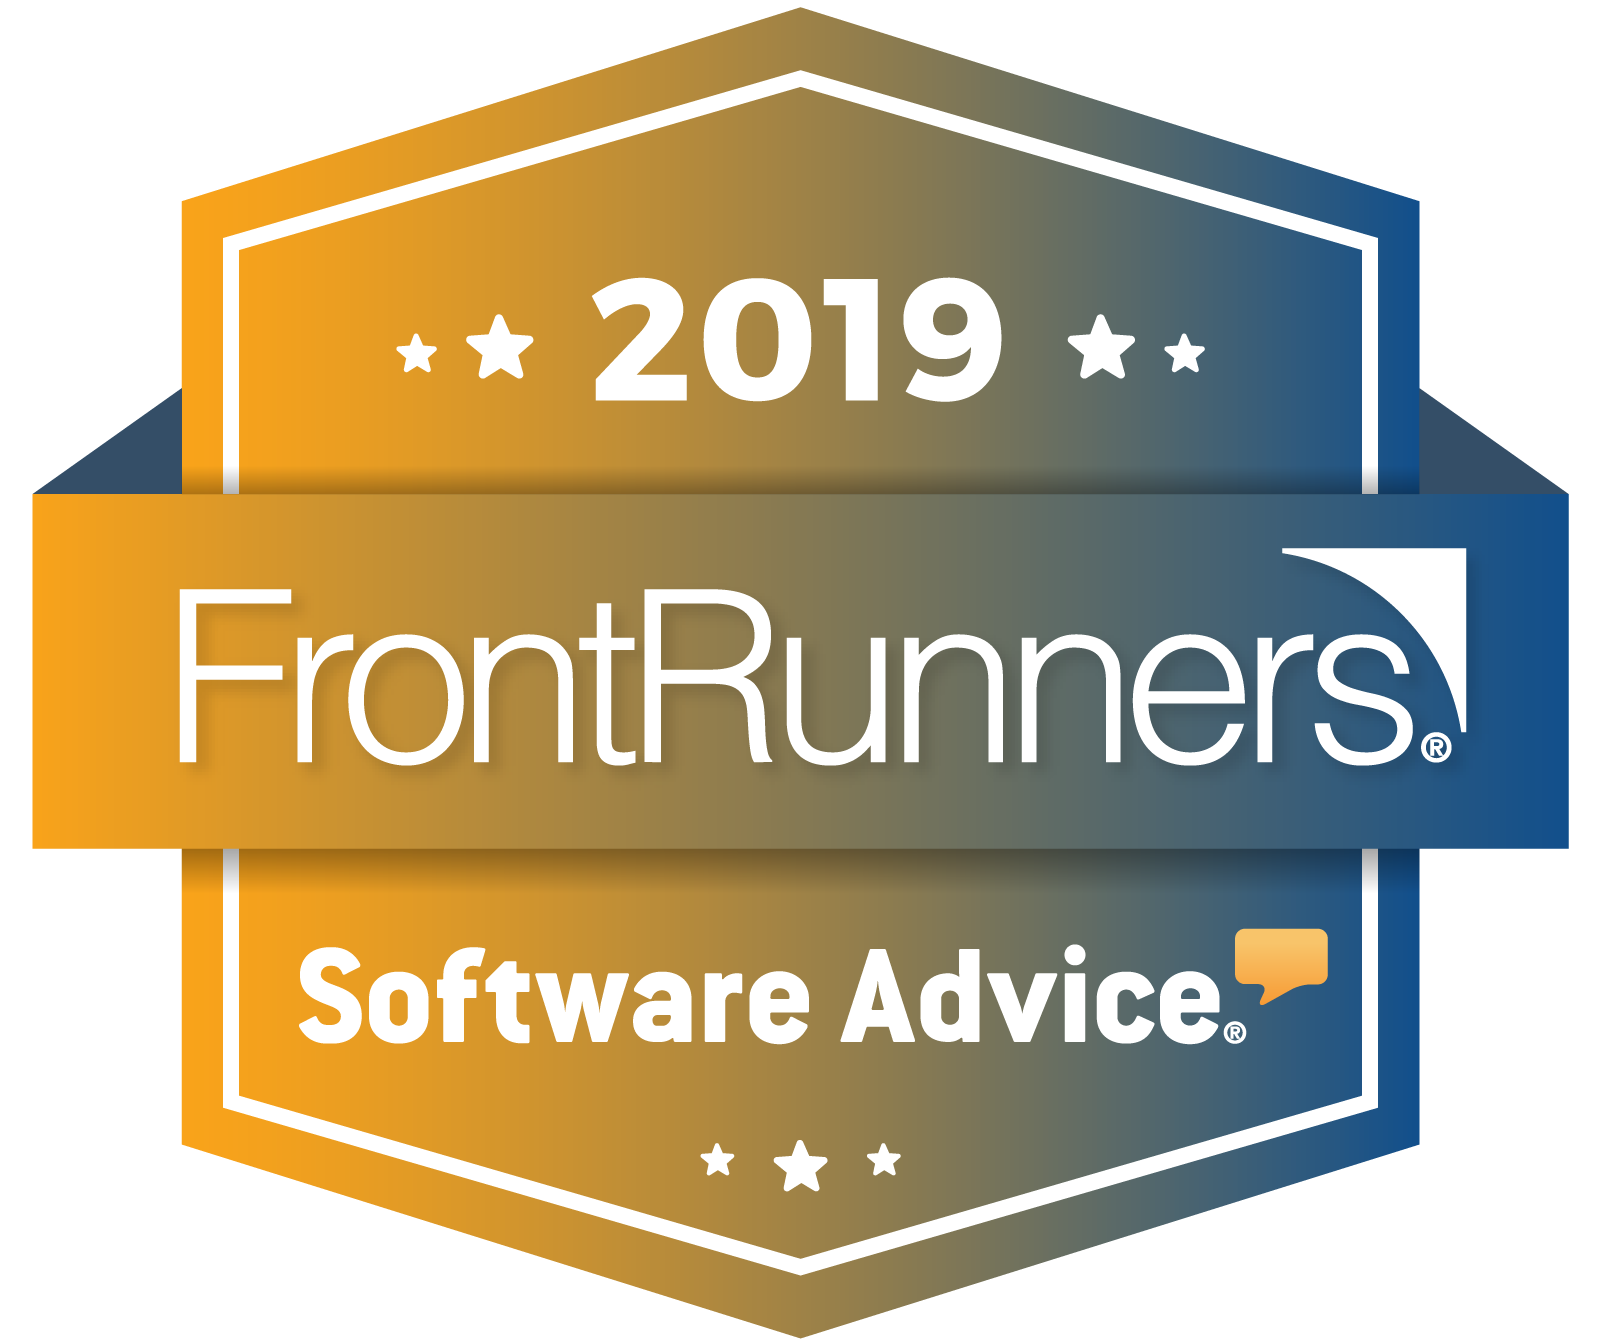 Re-Leased has just been named a FrontRunner for property management on Software Advice! Out of an evaluation of 170 Property Management products, only 15 with the top scores for Usability and User Recommended made the cut as FrontRunners.